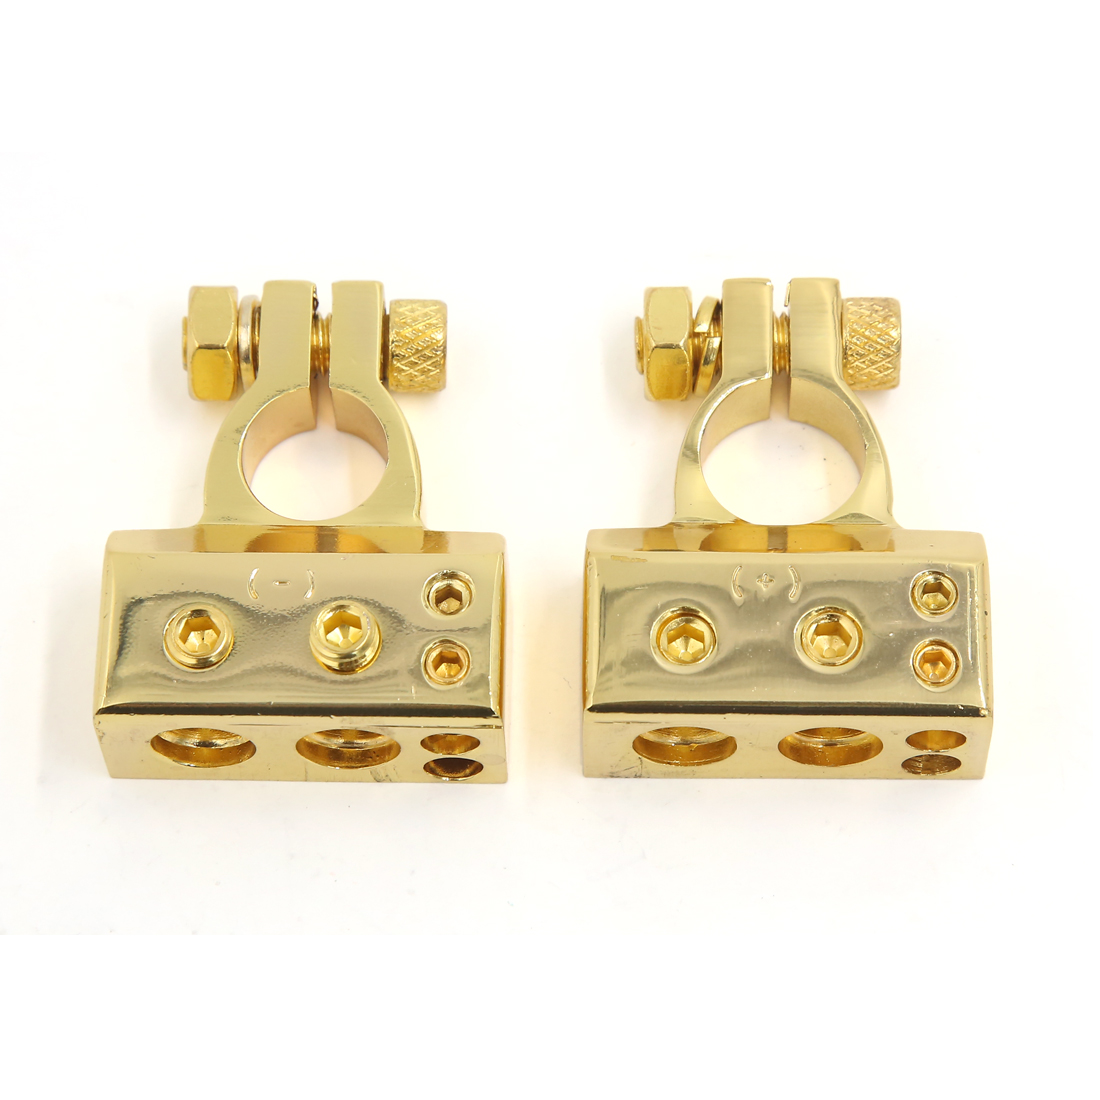 2 pcs Positive Negative Battery Terminals Connectors Gold Tone for Auto Car